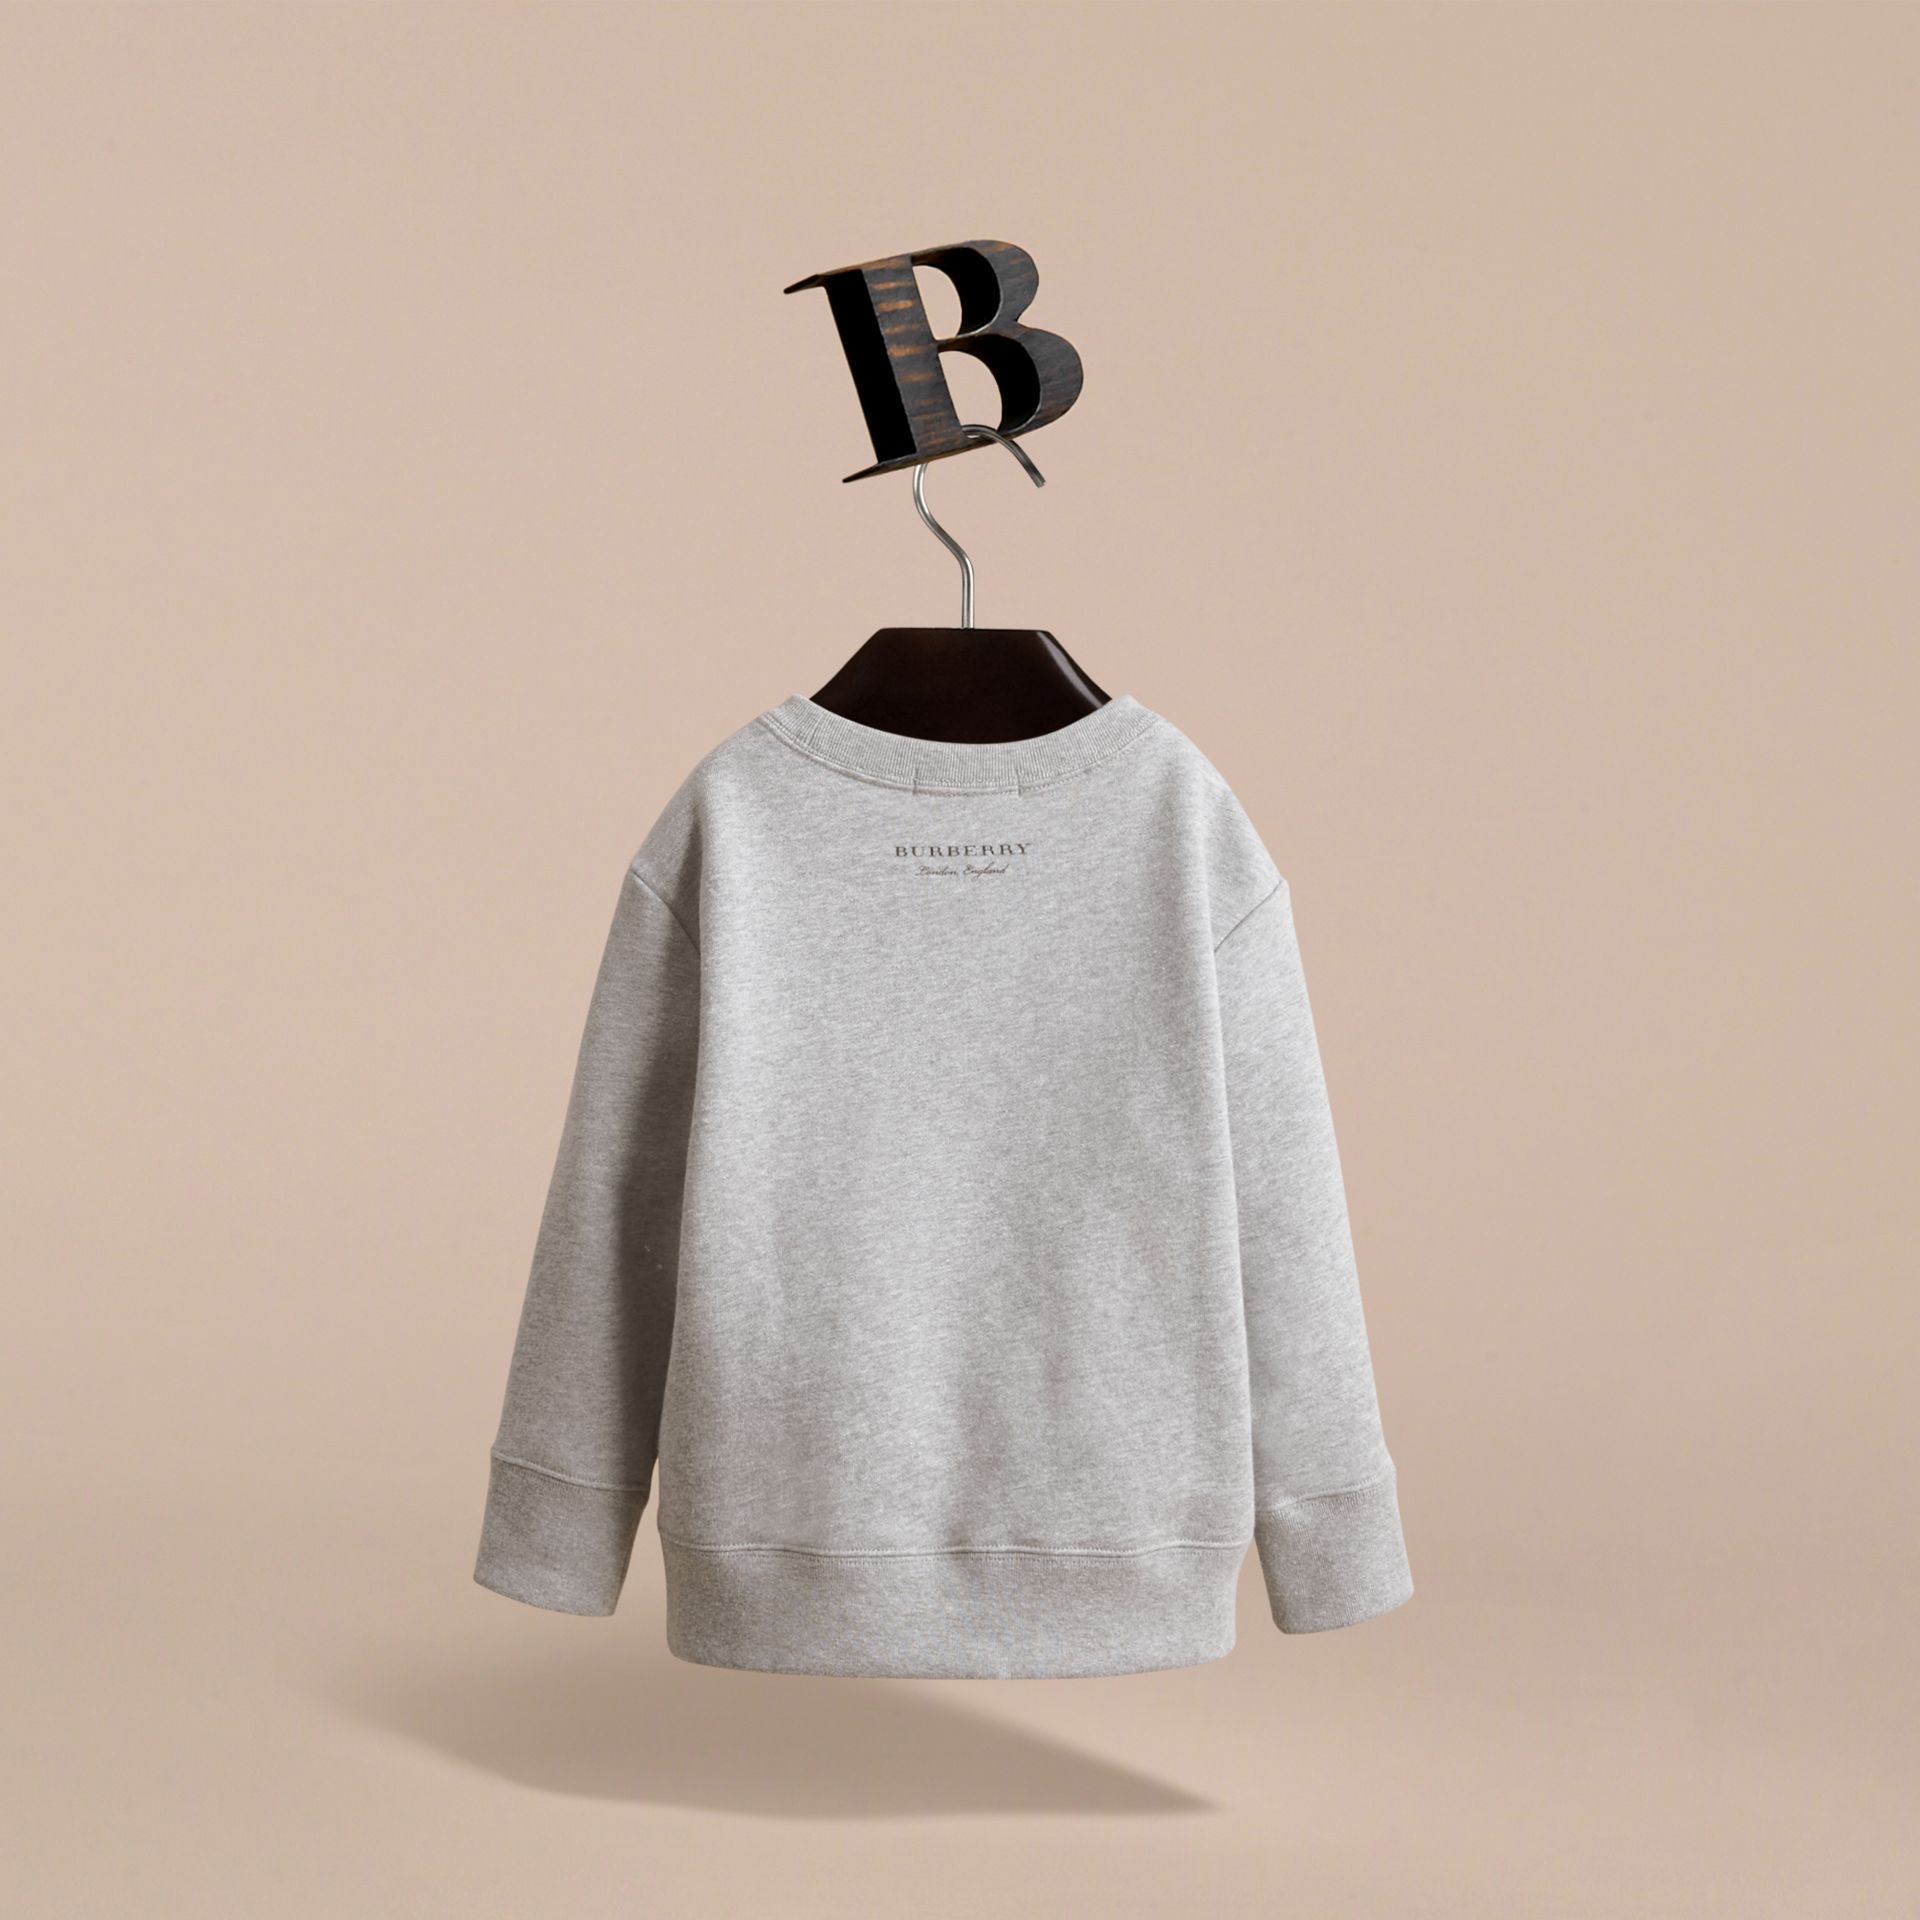 Beasts Motif Cotton Sweatshirt in Grey Melange - Girl | Burberry - gallery image 4